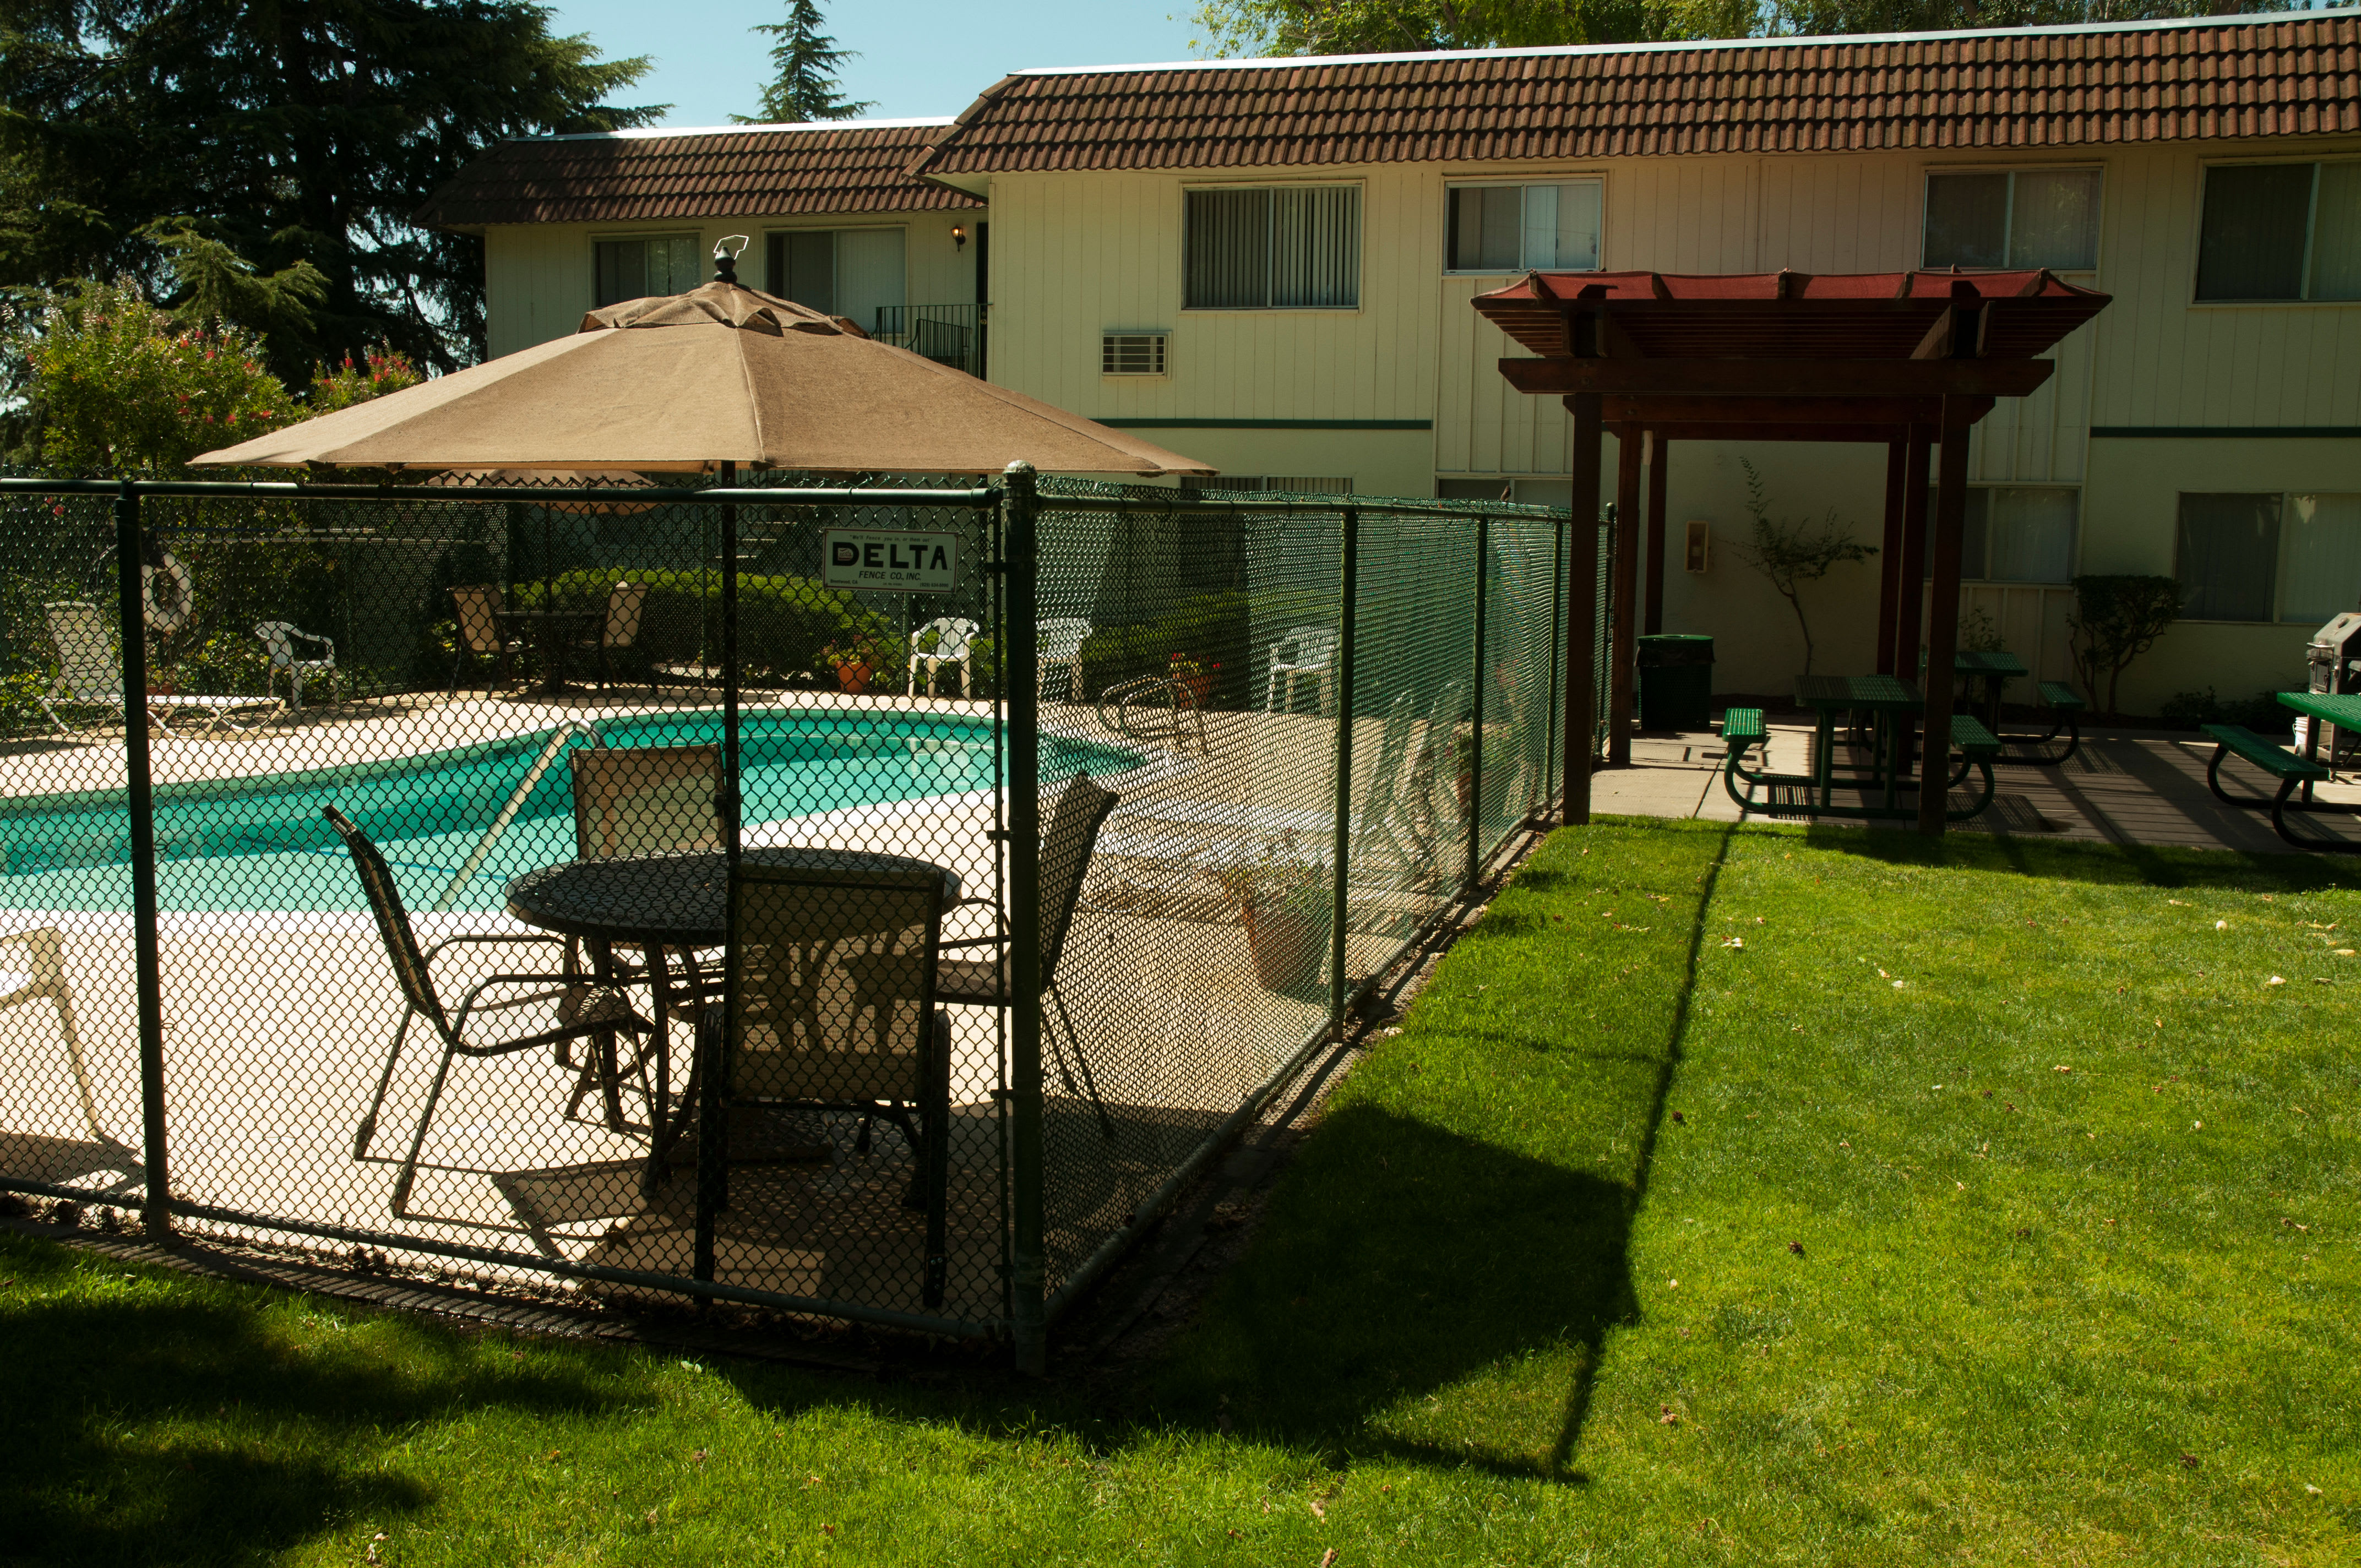 Our apartments in Antioch, California offer a swimming pool